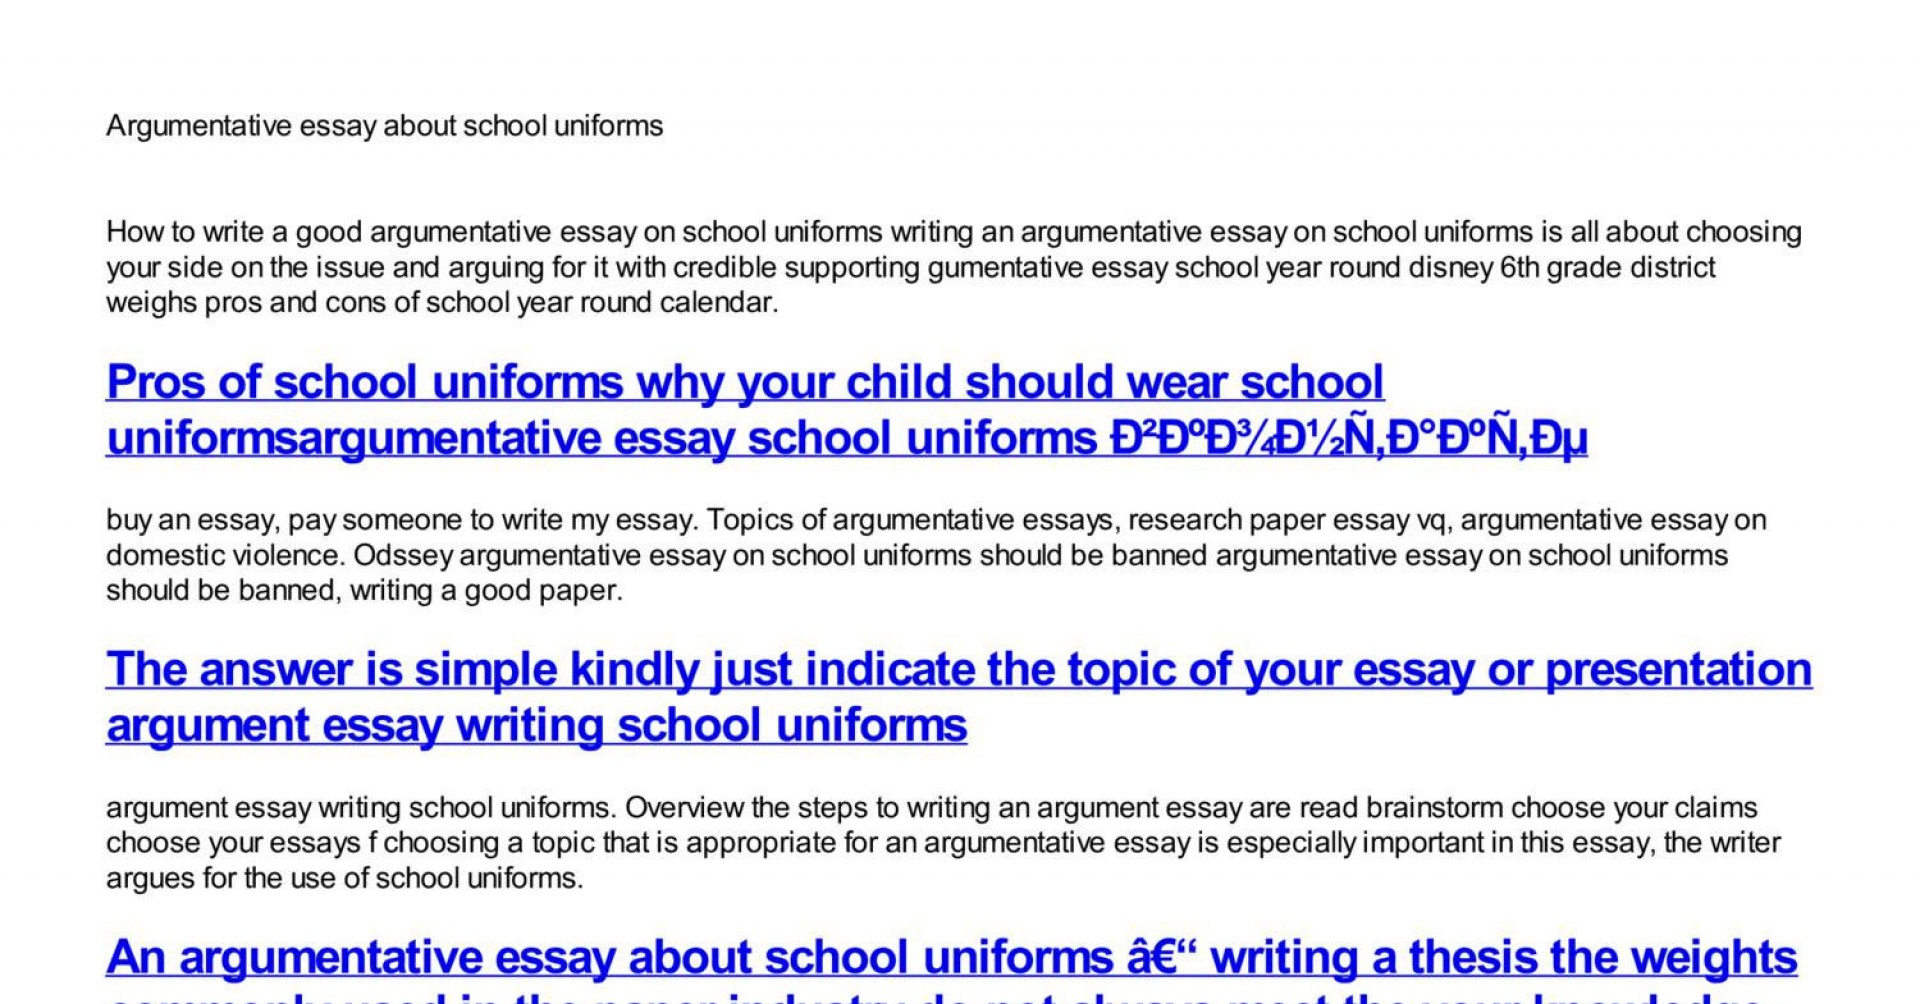 004 Essay Example Argumentative About School Uniforms Dreaded On Are Beneficial Should Be Banned Persuasive Mandatory 1920